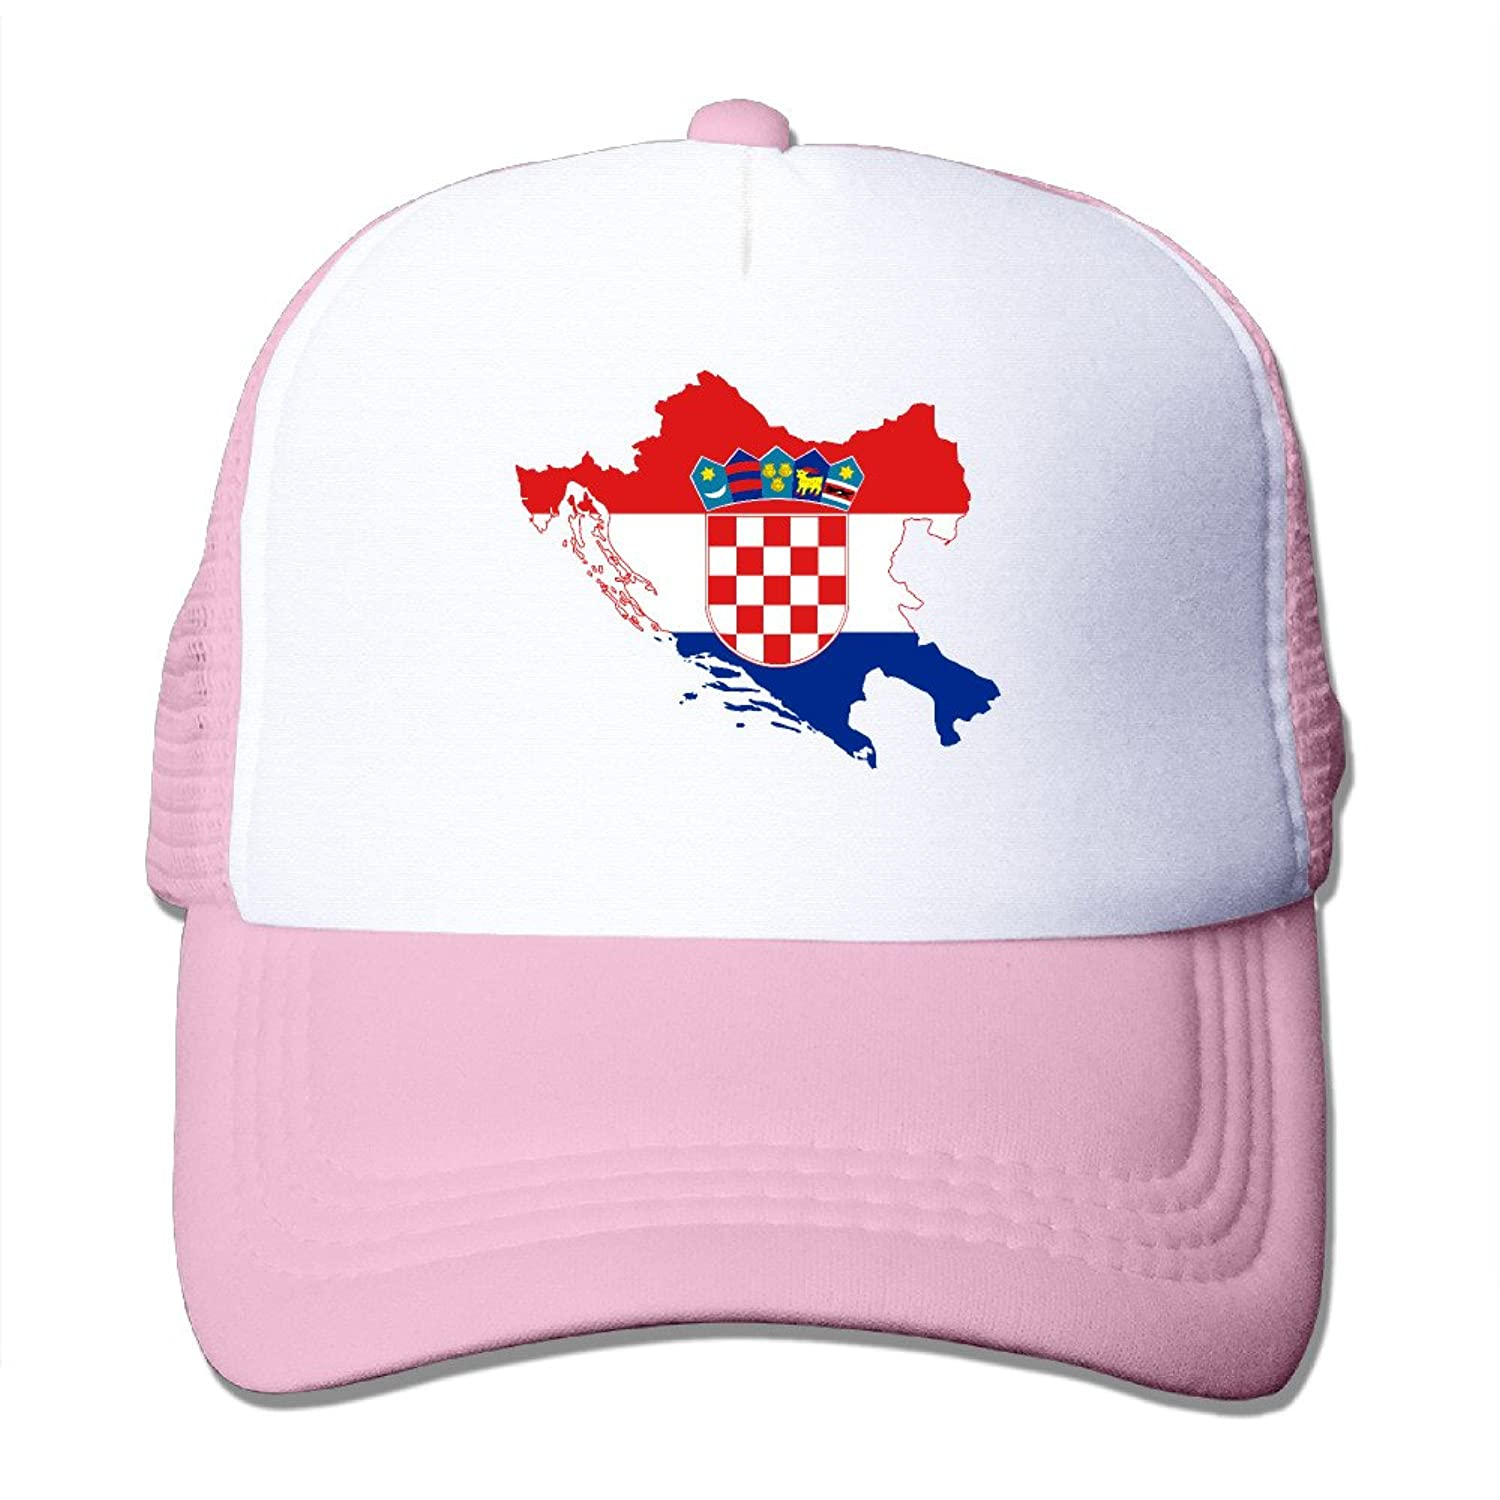 Adult Unisex Croatia Flag 100% Nylon Mesh Caps One Size Fits Most Hip-Hop Caps Adjustable